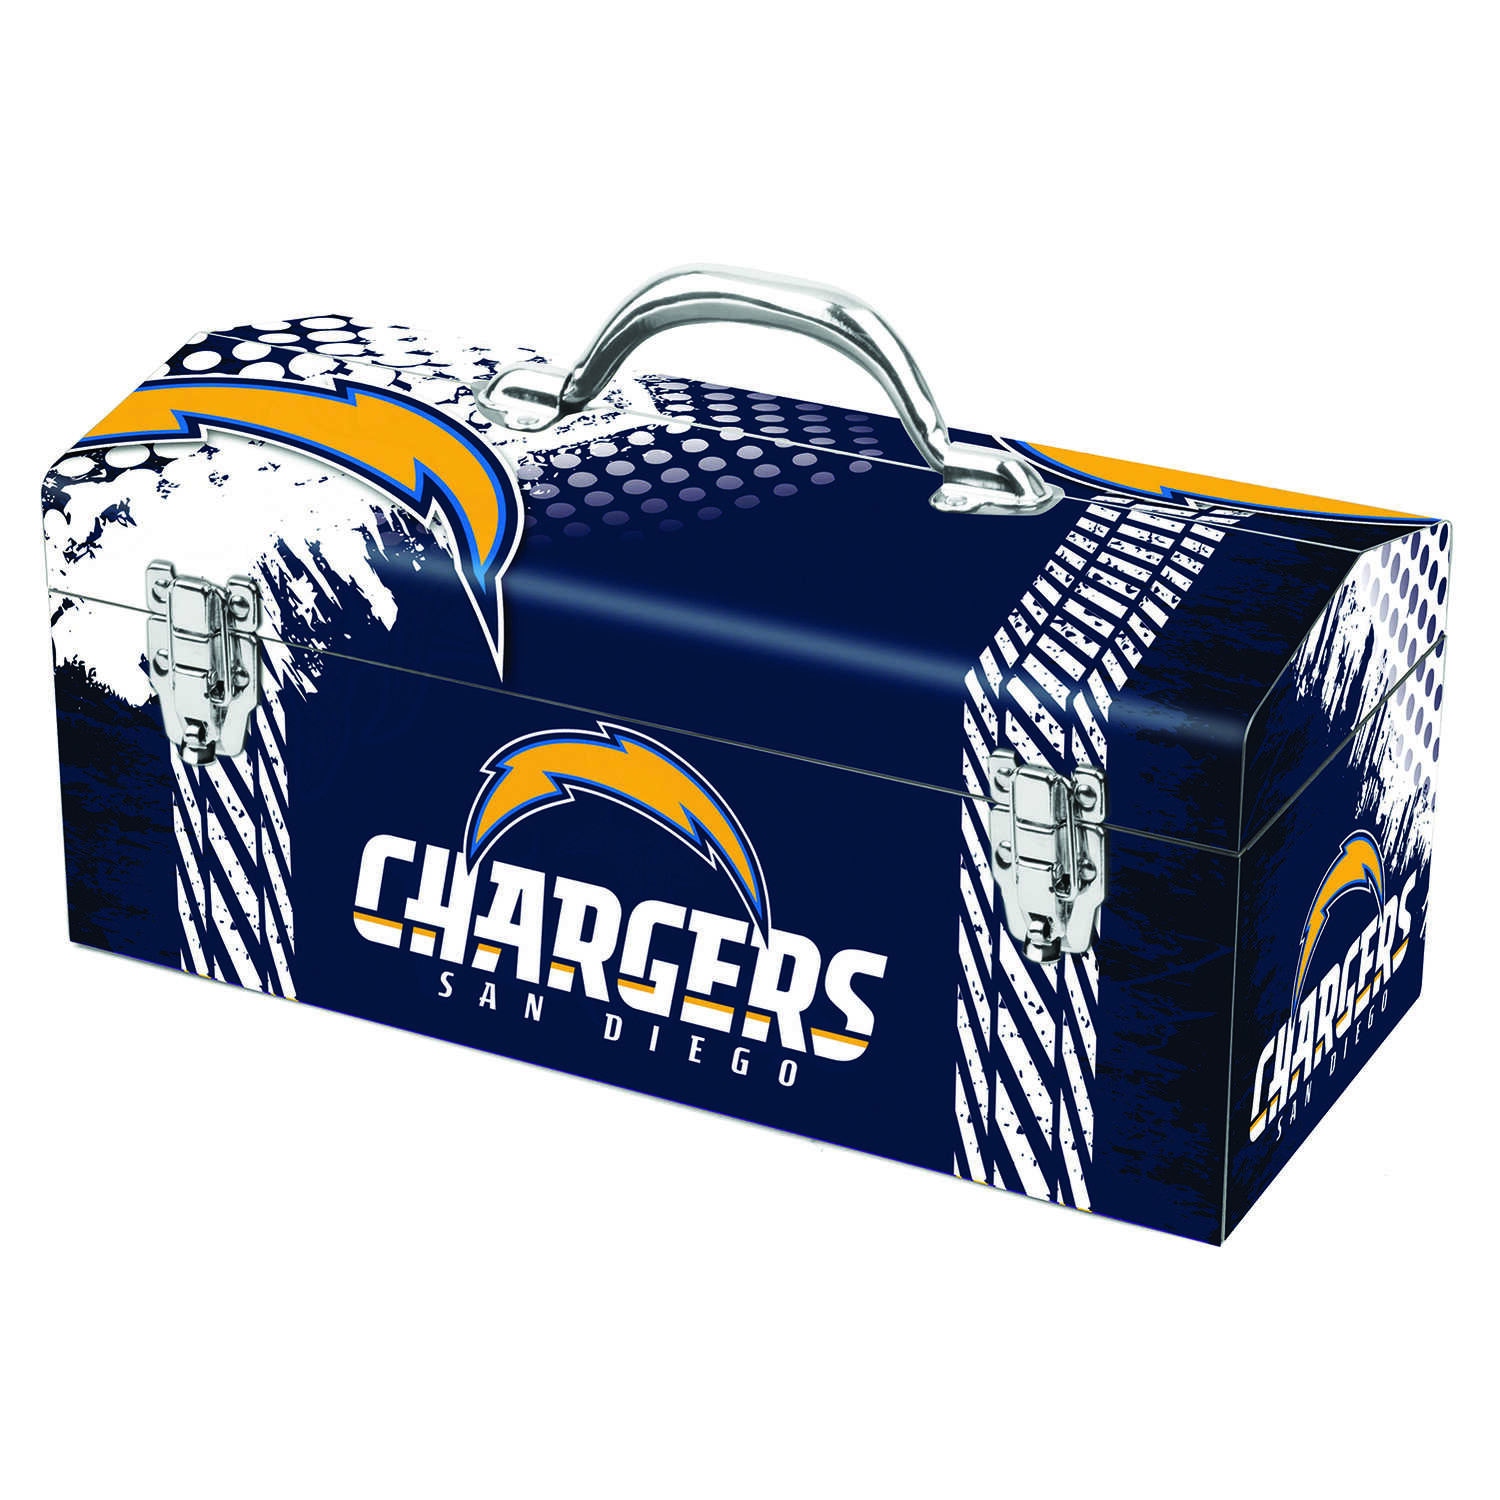 Windco  Steel  San Diego Chargers  Art Deco Tool Box  7.1 in. W x 7.75 in. H 16.25 in.